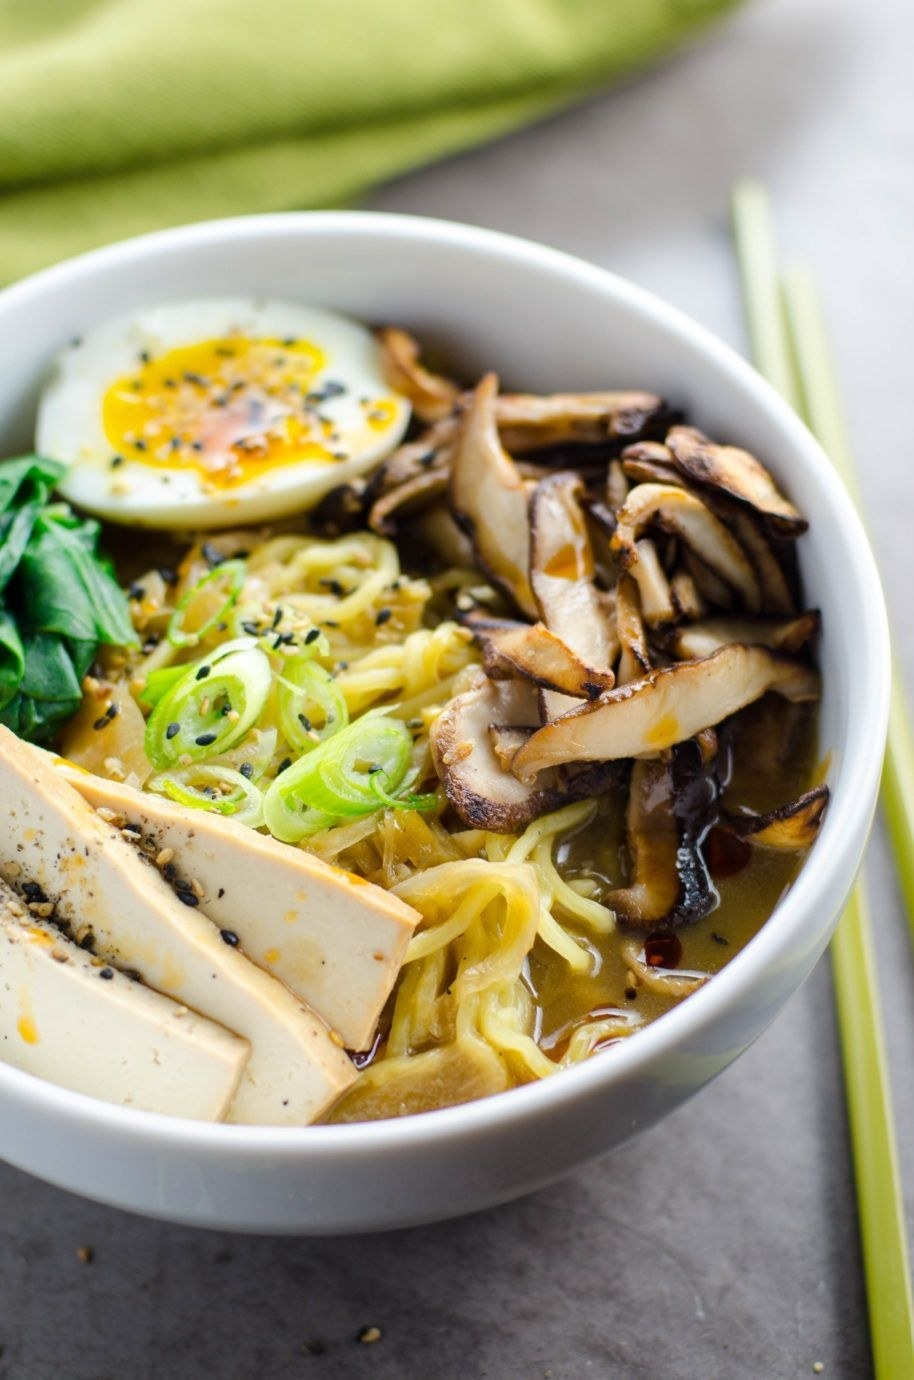 A bowl of vegetarian ramen with sliced tofu, mushrooms, scallions, and a soft boiled egg.